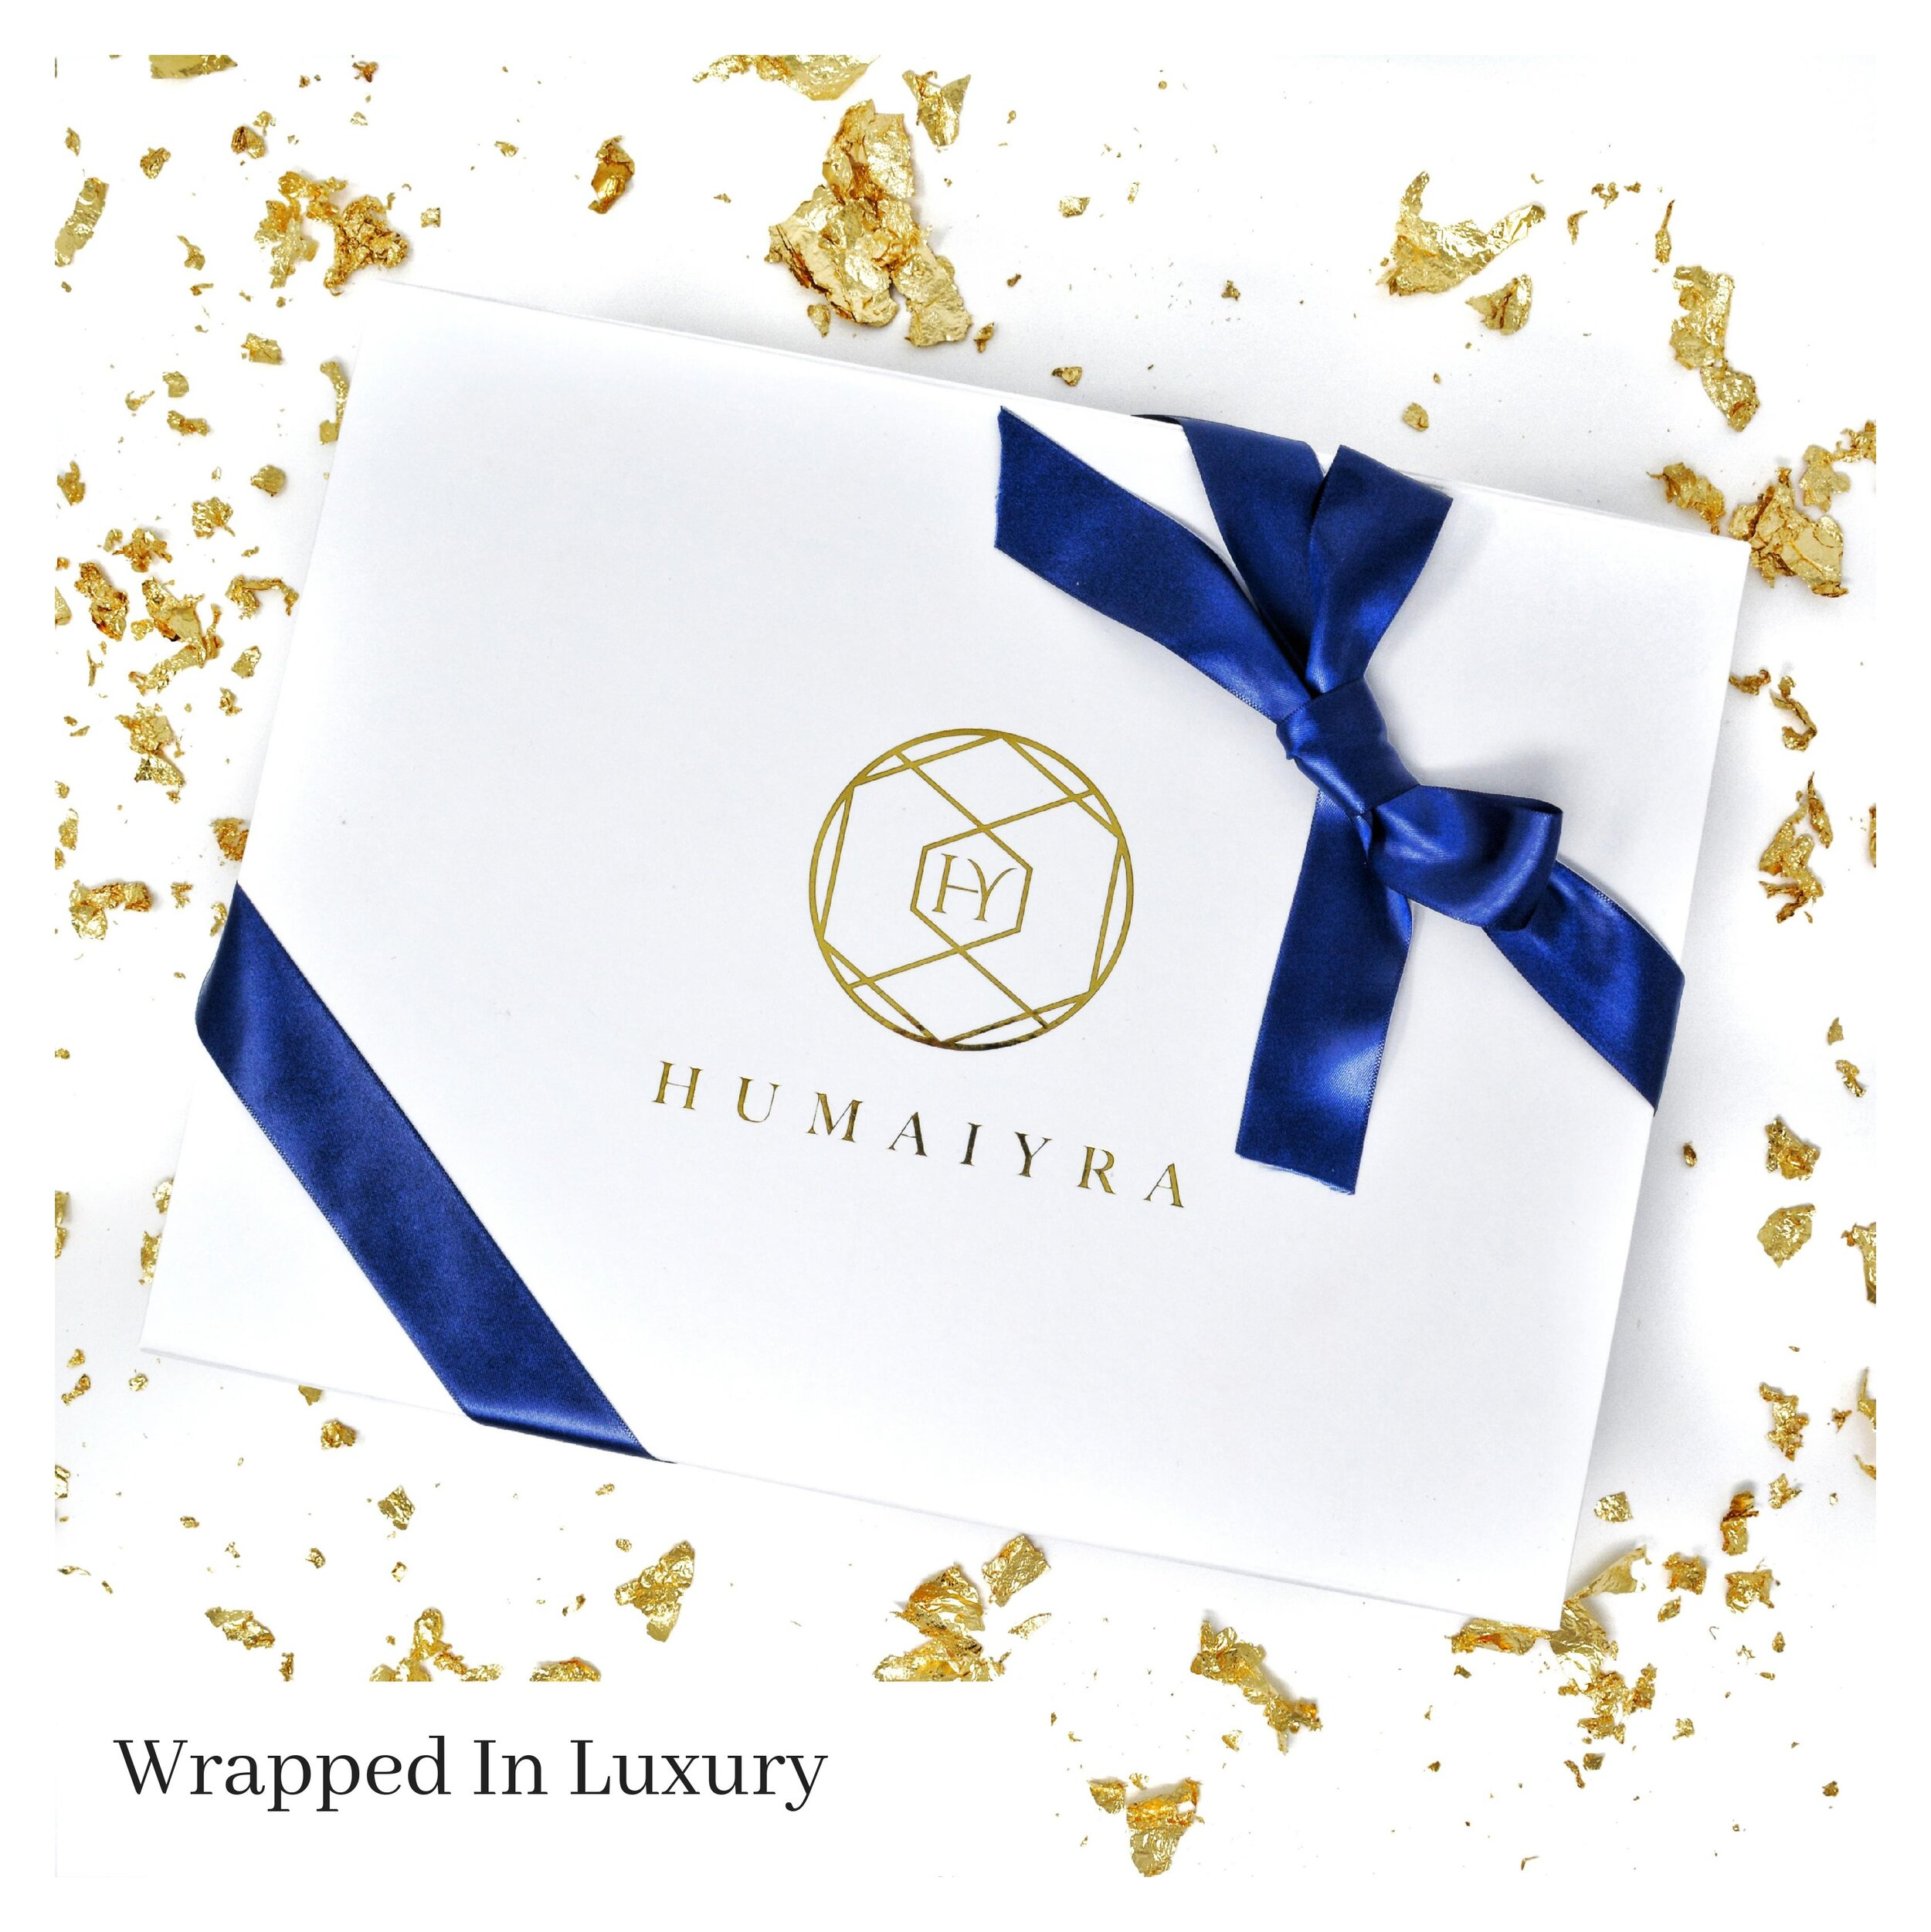 Wrapped in luxury